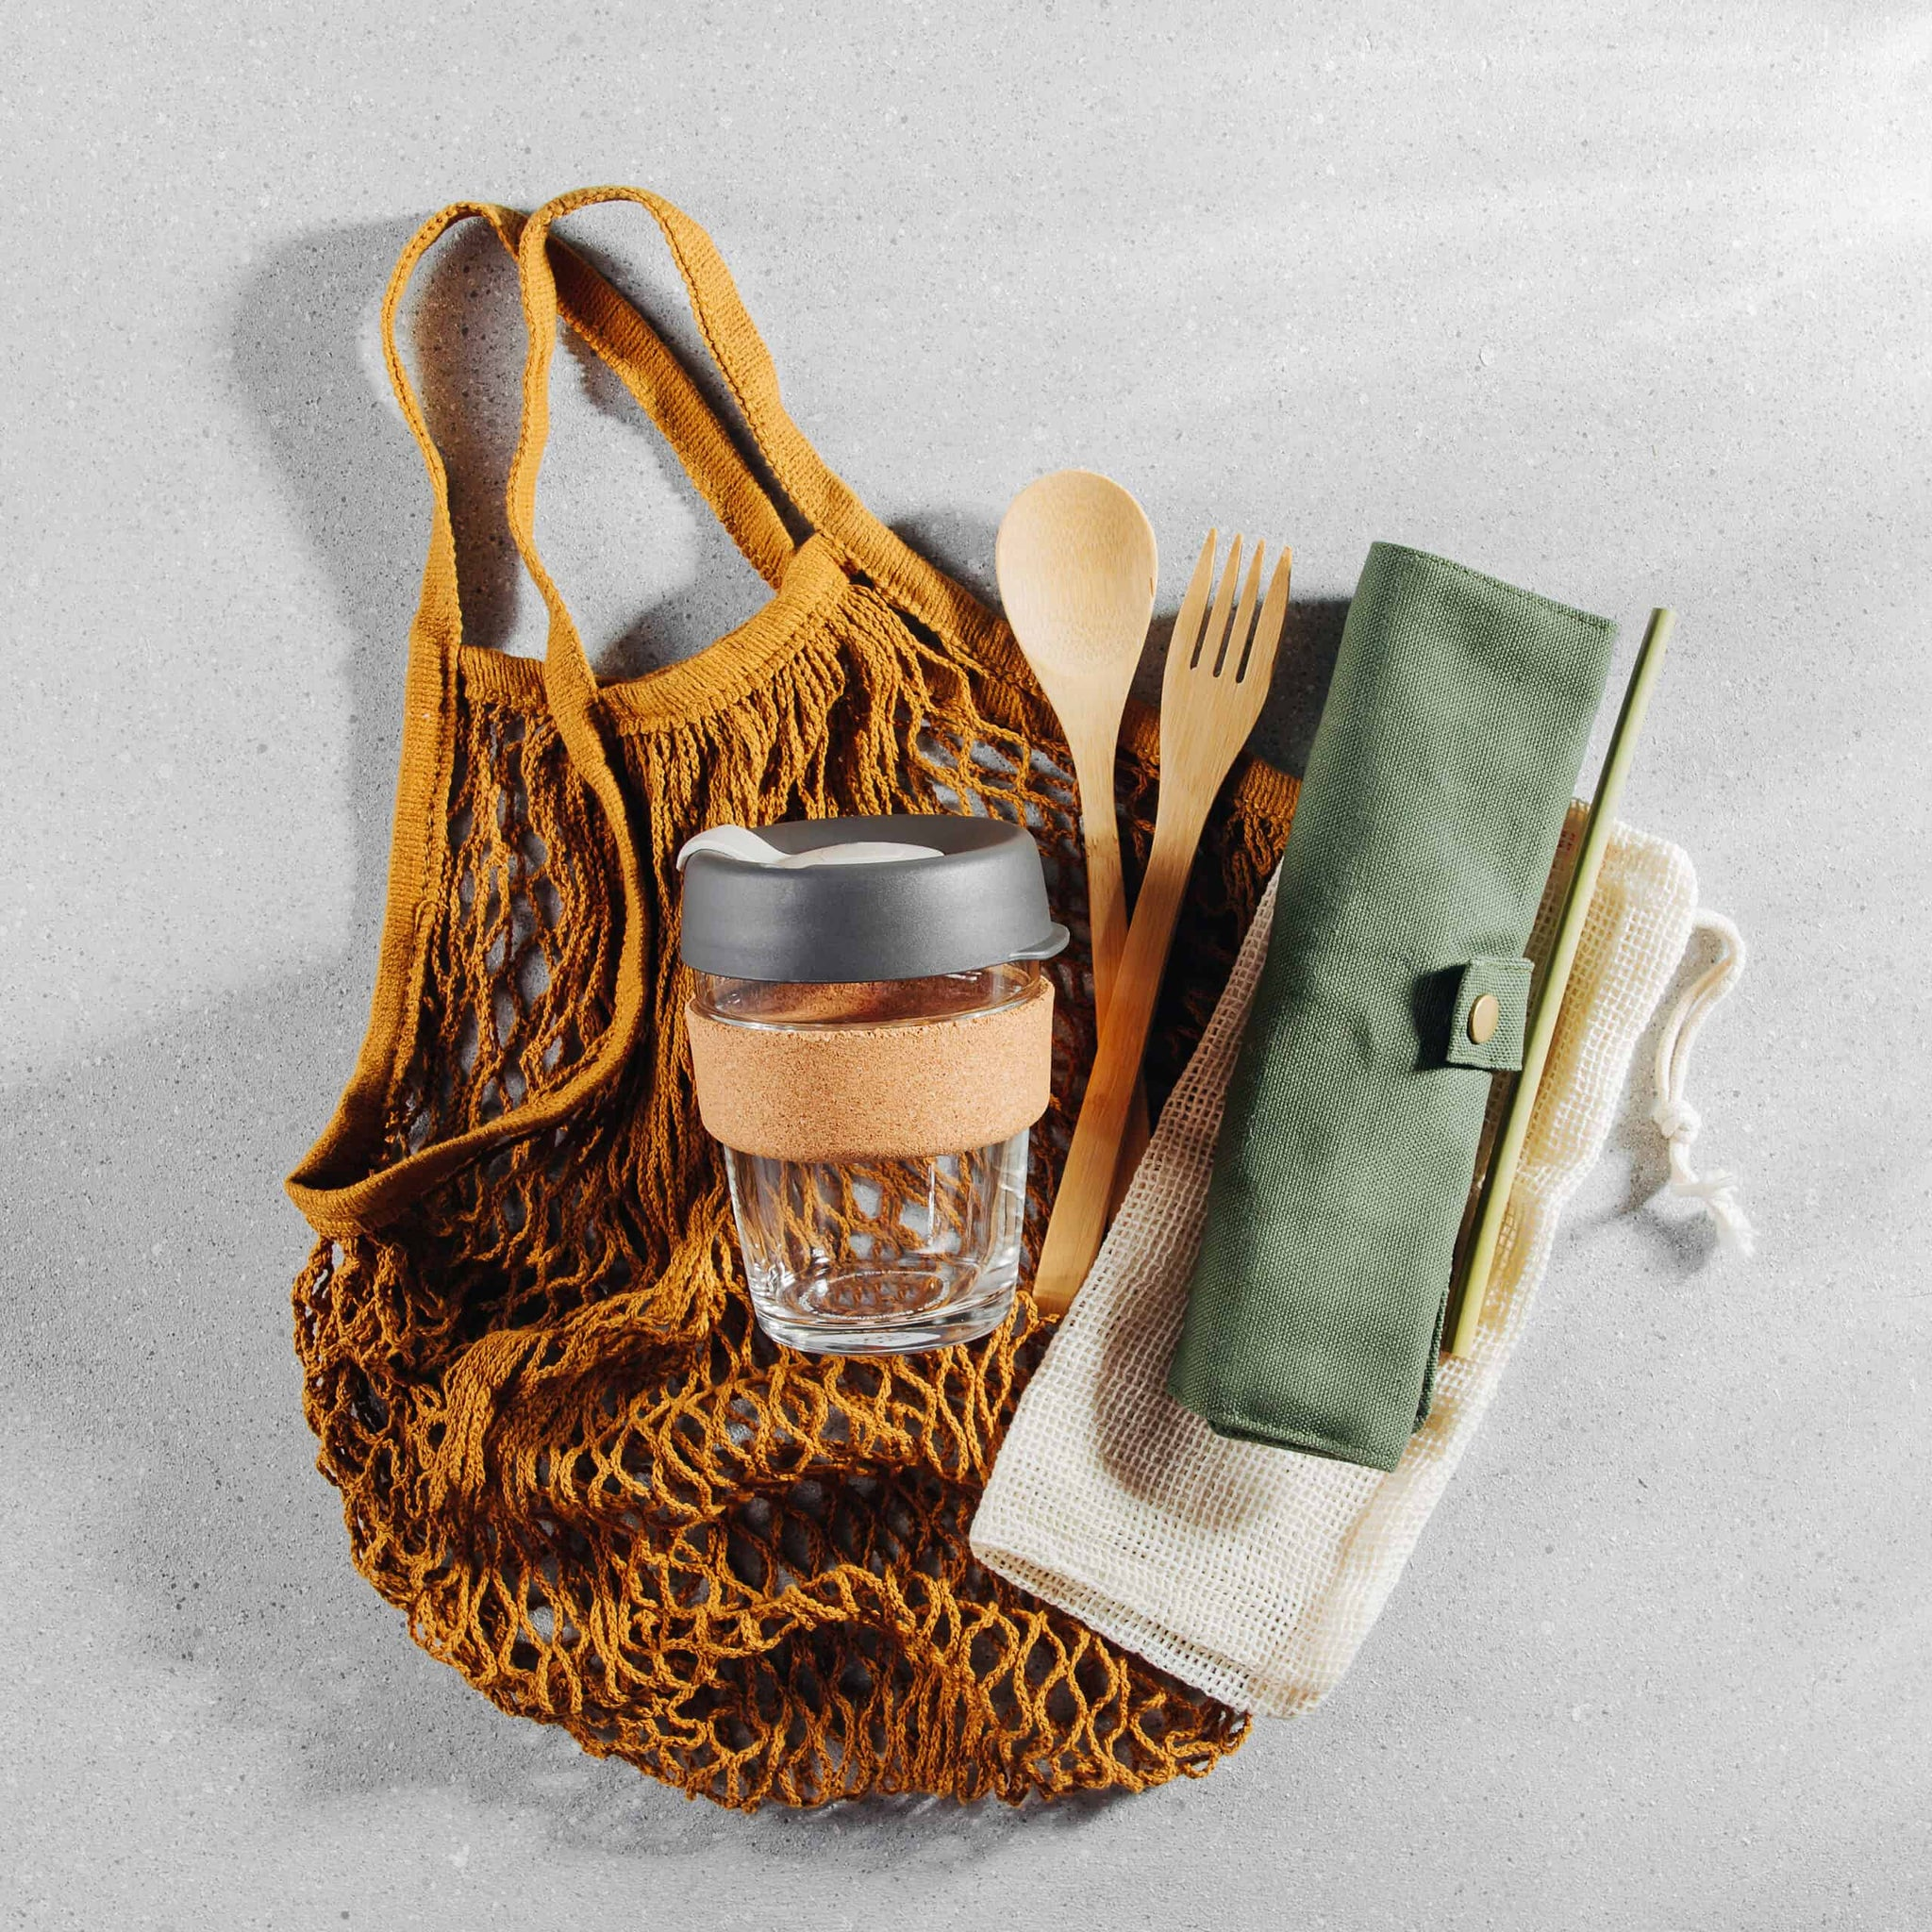 Gear up with a Zero Waste Kit